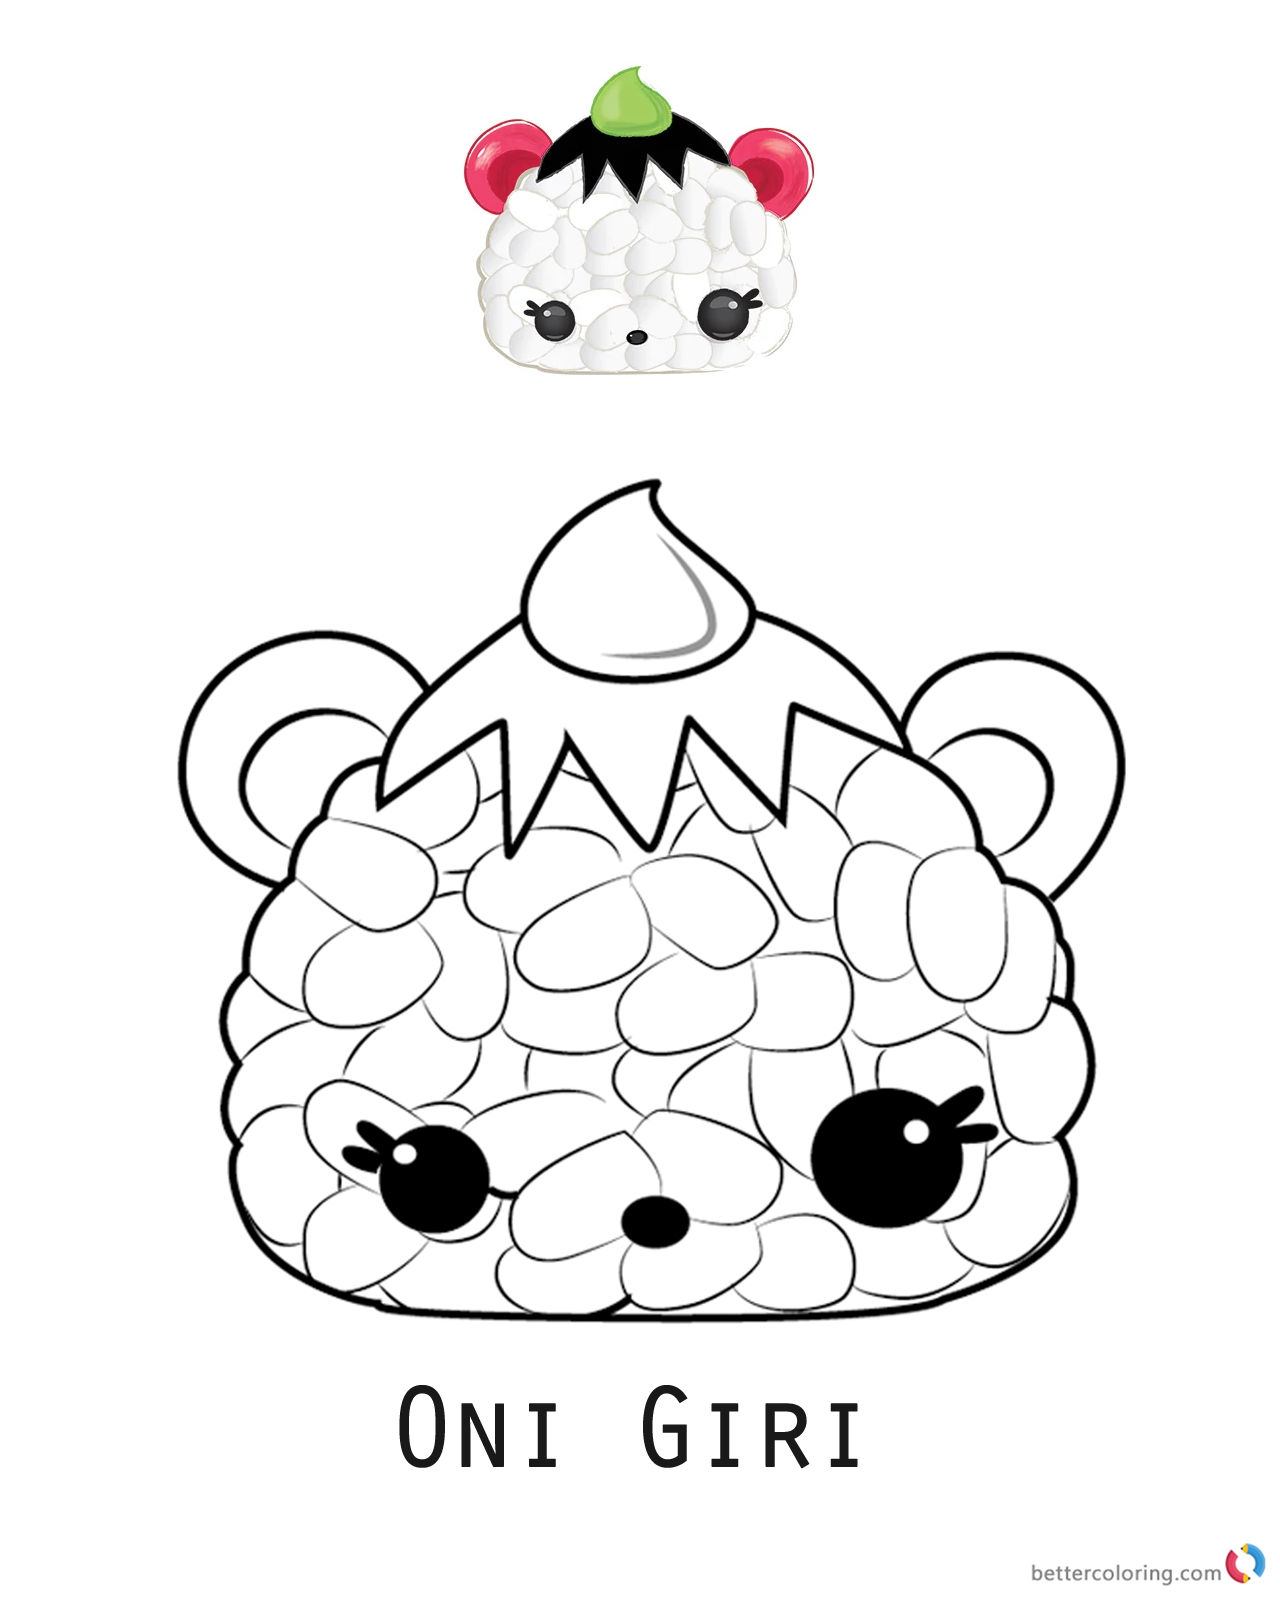 Oni Giri from Num Noms coloring pages printable